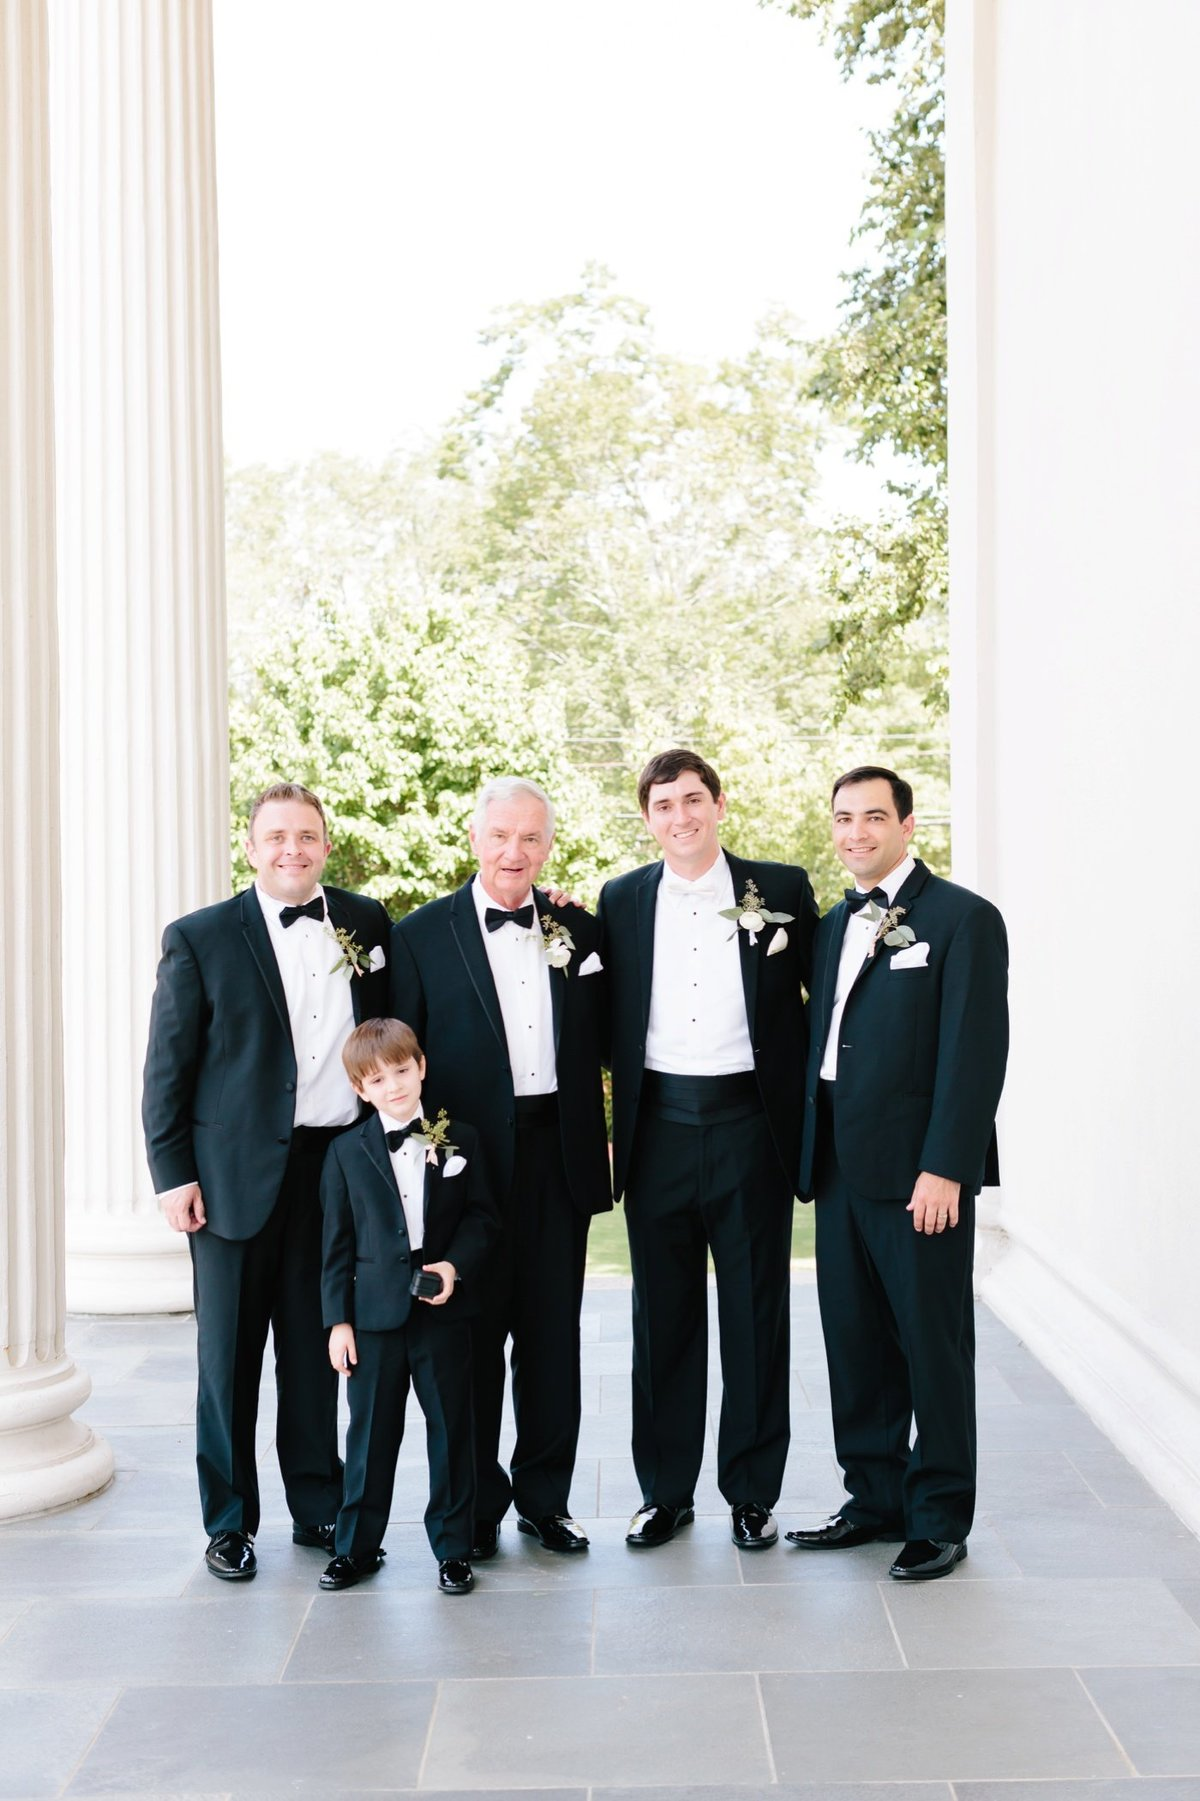 Georgia South Carolina Destination Wedding Photographer_0155